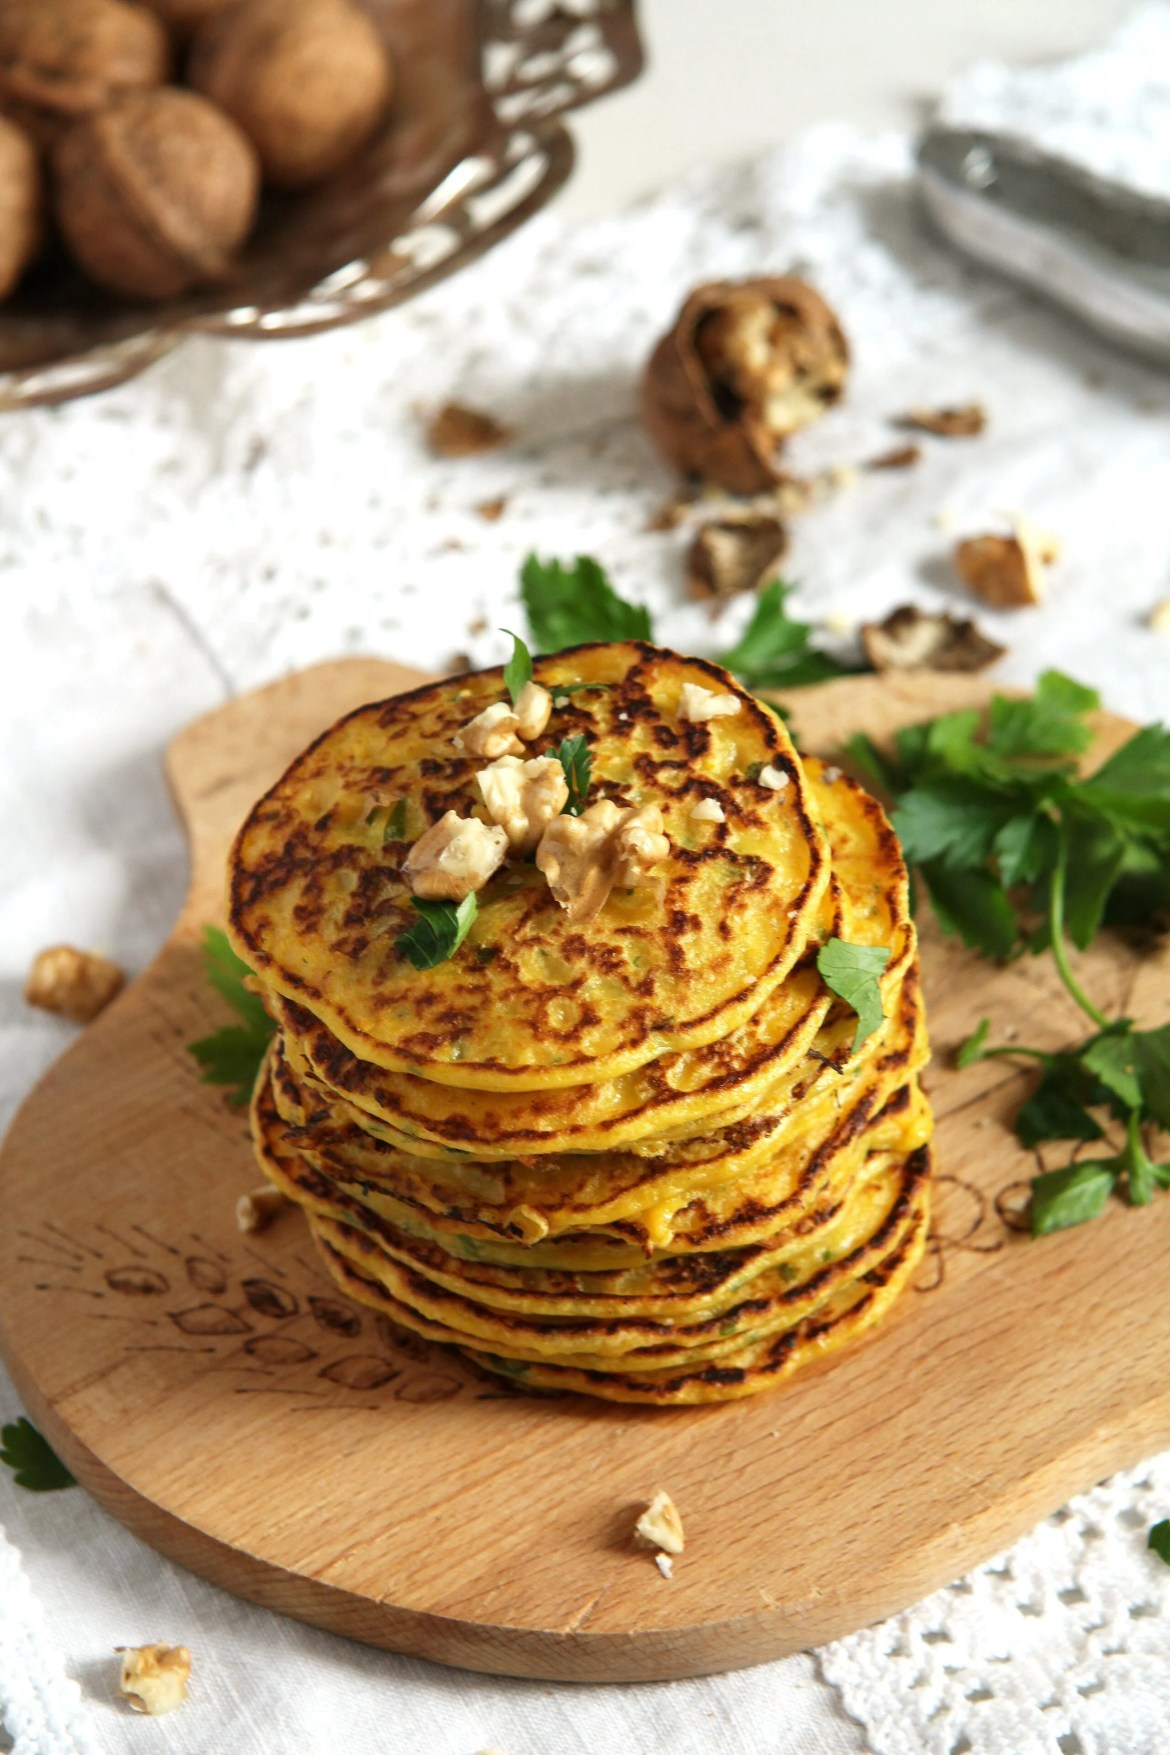 pumpkin fritters ed 5 Easy Savory Butternut Squash or Pumpkin Fritters